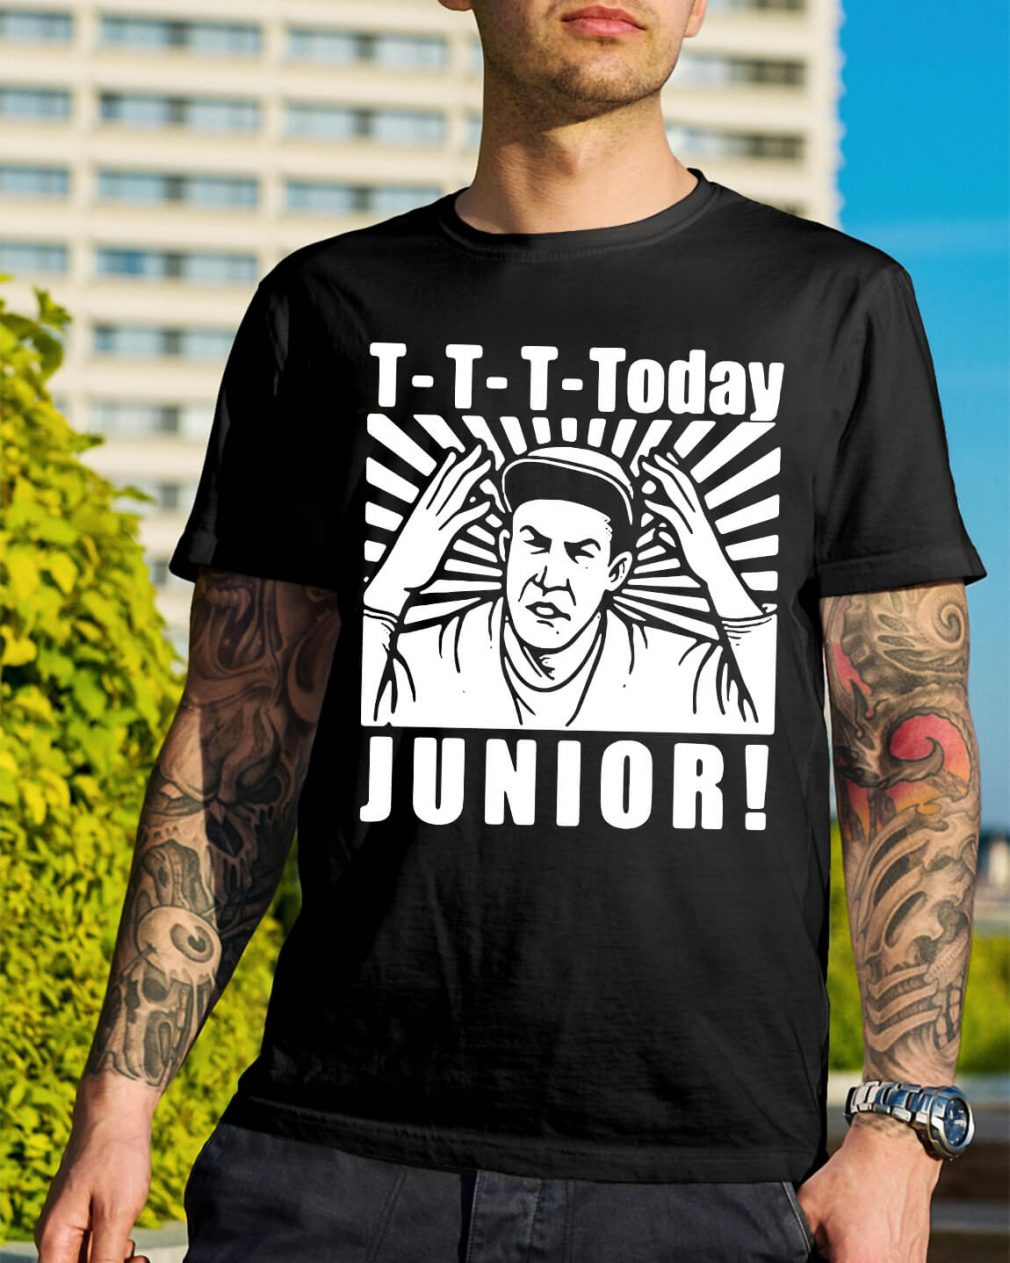 T-T-T-Today Junior shirt